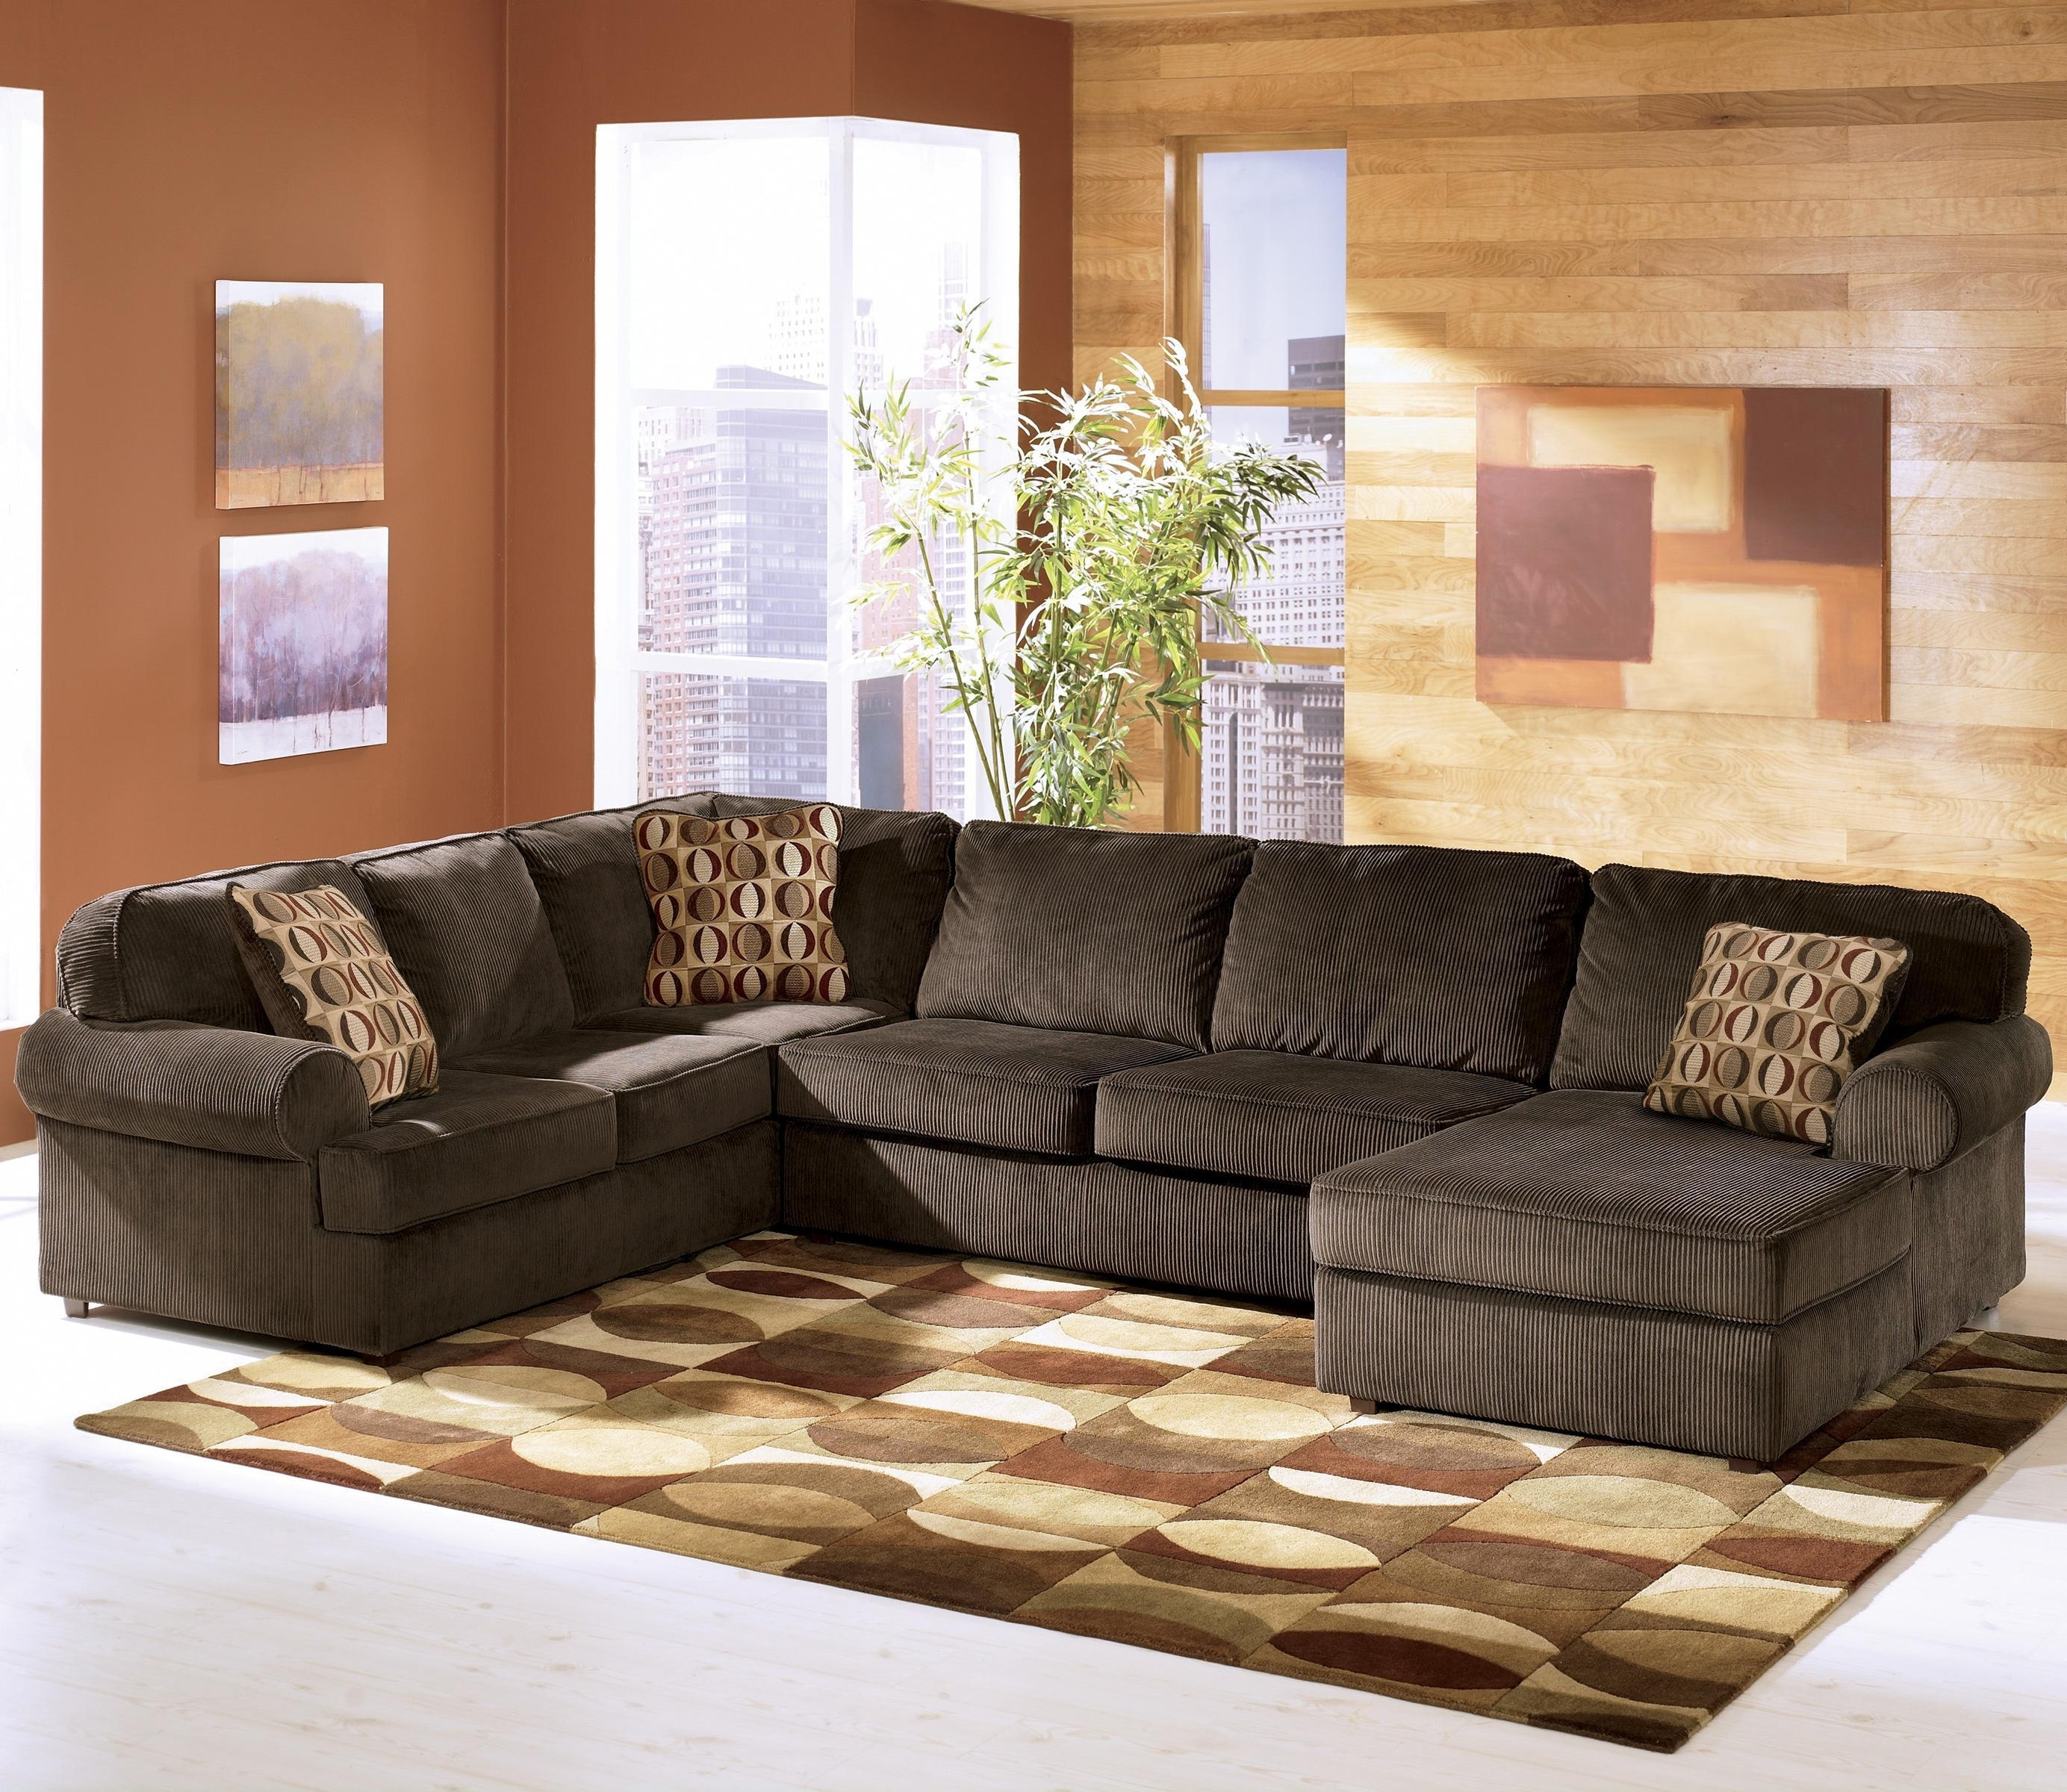 Famous Sectional Sofas At Ashley Intended For Ashley Furniture Sectional Sofas (View 3 of 20)